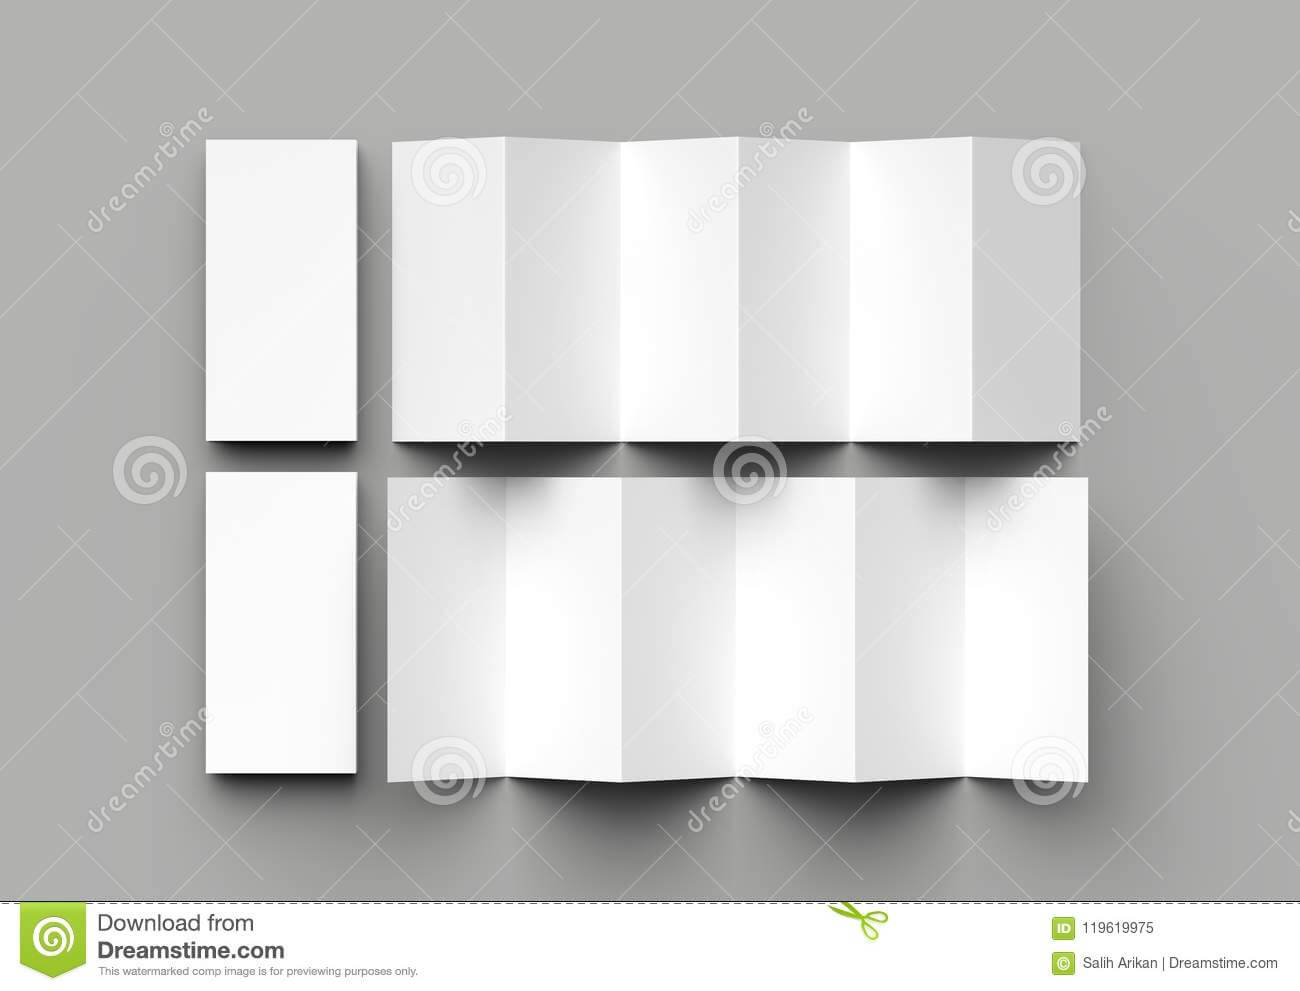 12 Page Leaflet, 6 Panel Accordion Fold - Z Fold Vertical Throughout 12 Page Brochure Template